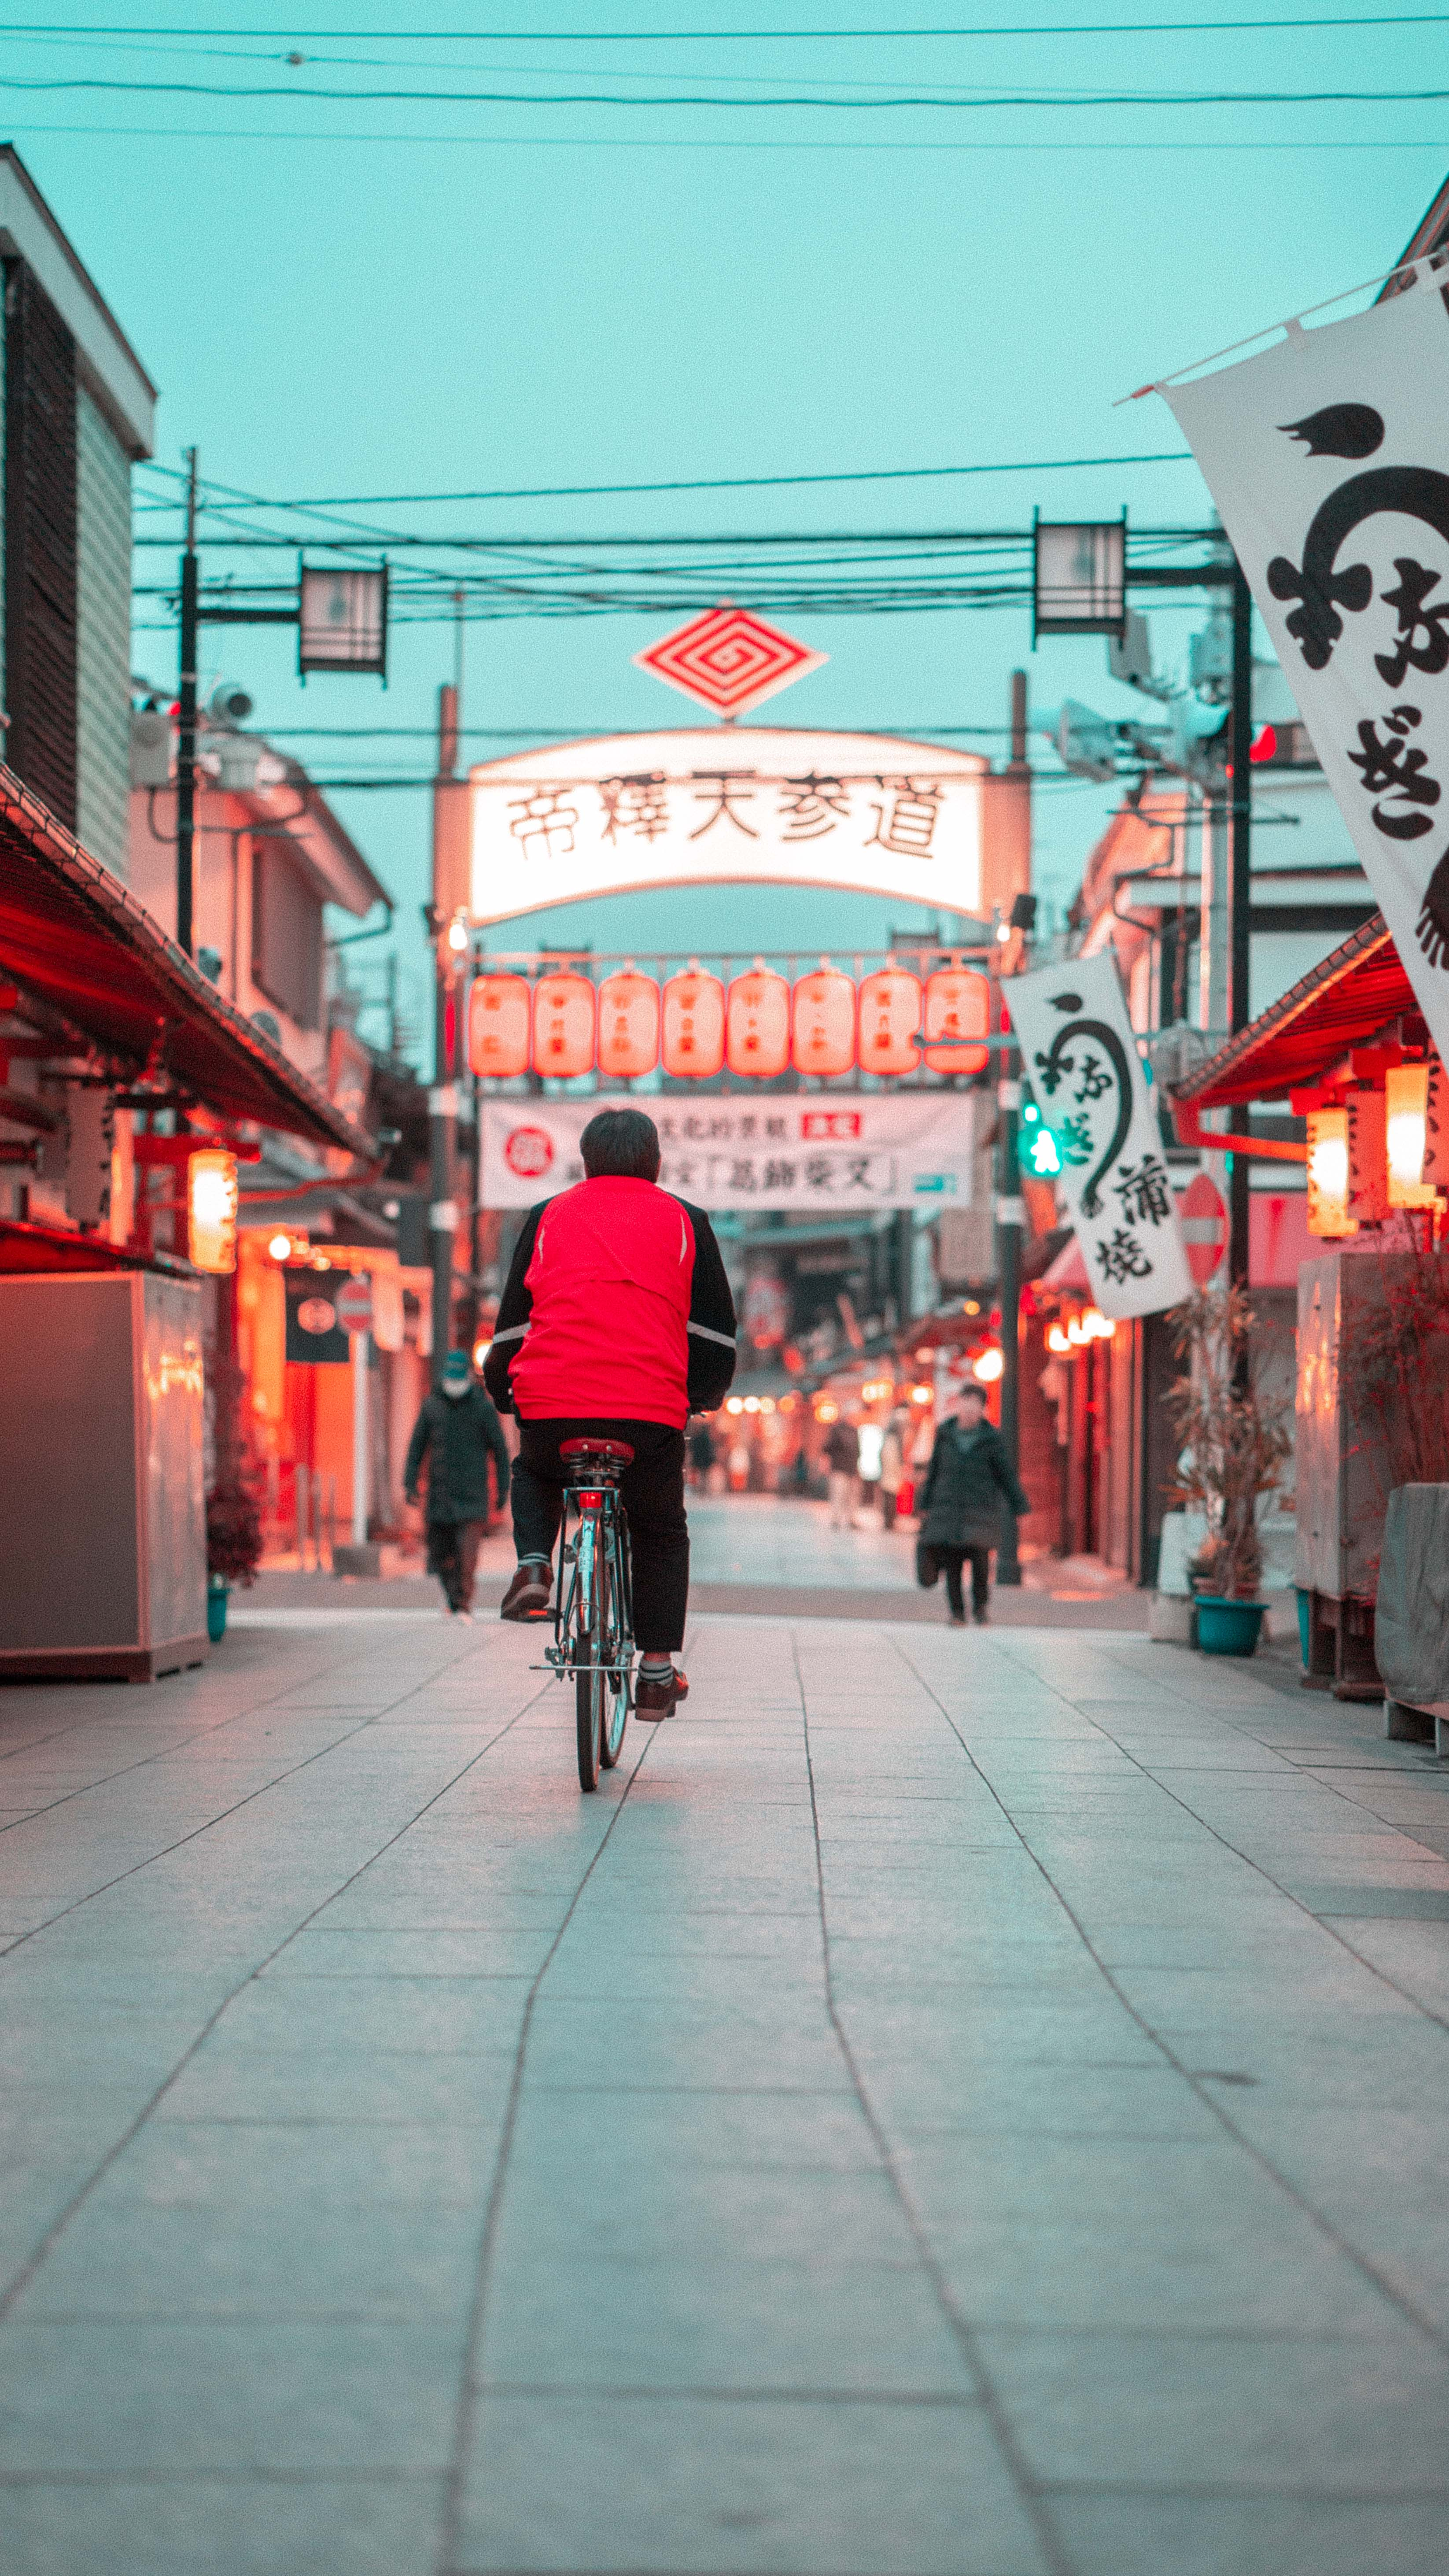 person cycling on streets with Kanji signs during daytime